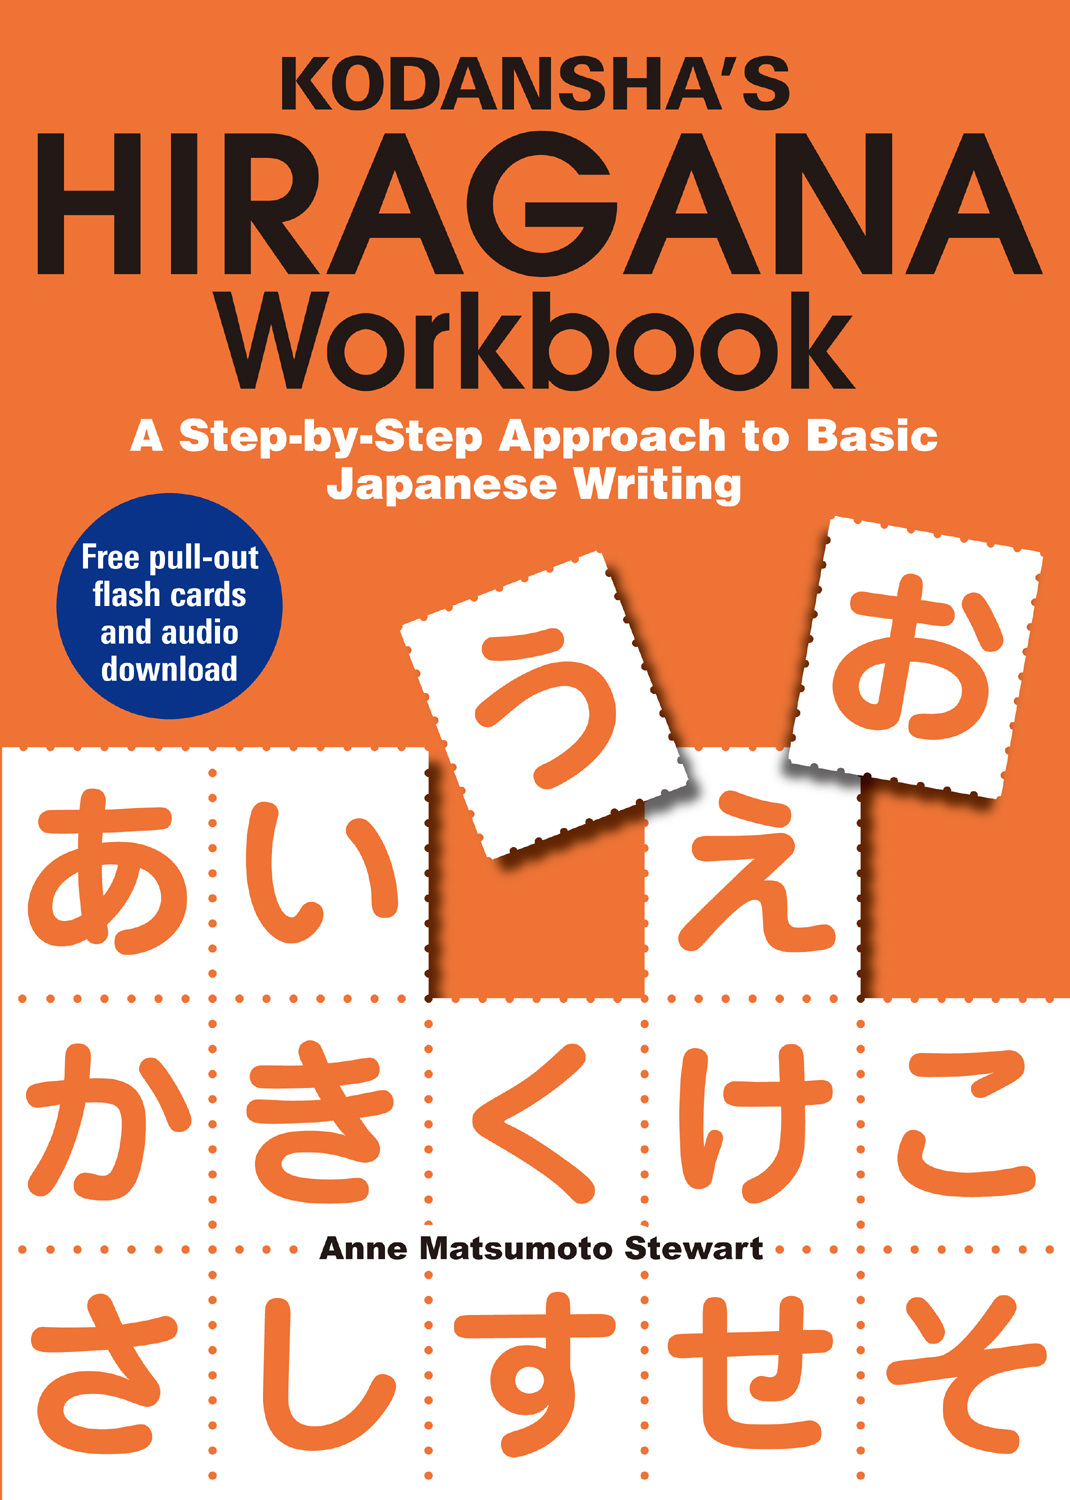 Cover of Kodansha's Hiragana Workbook: A Step-by-Step Approach to Basic Japanese Writing.